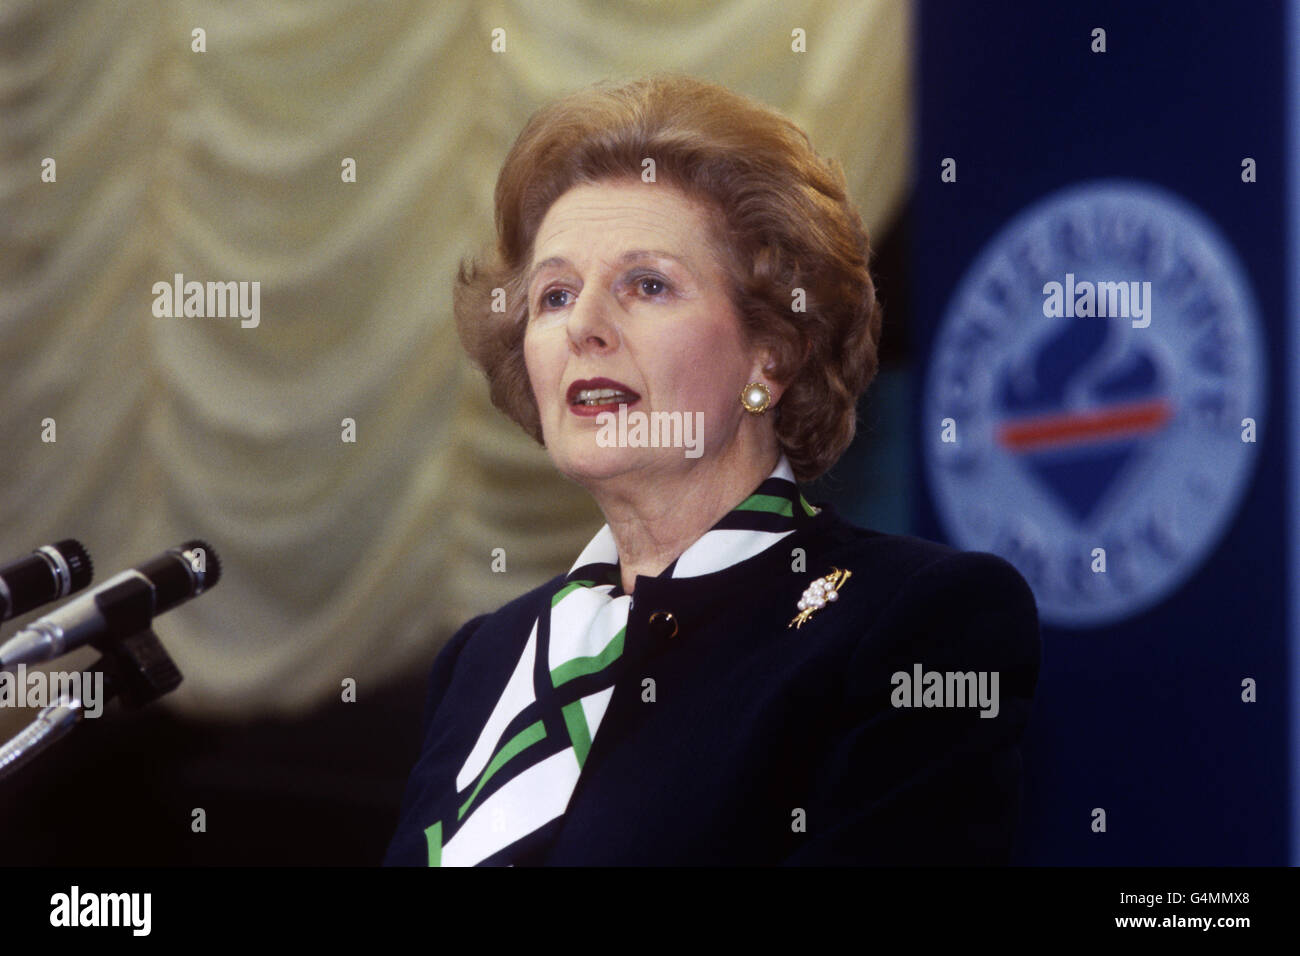 Politics - Margaret Thatcher - Keynote Speech - Annual Conservative Central Council Conference - Torquay - Stock Image